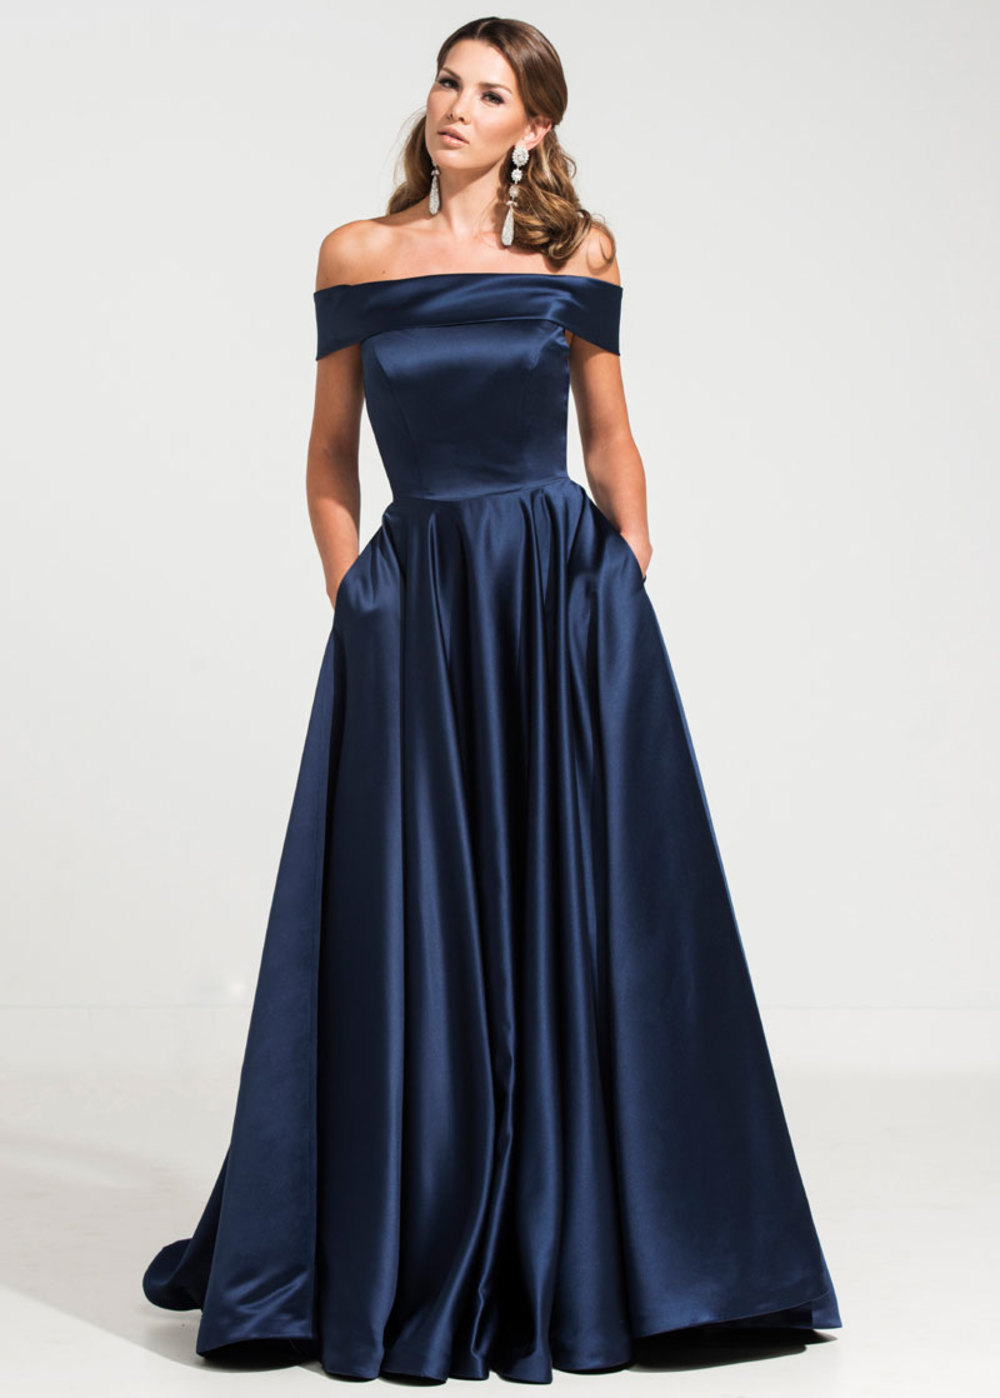 8e17d120037 -50% Graceful Satin Off-the-shoulder Neckline A-line Military Ball Gown  Dresses